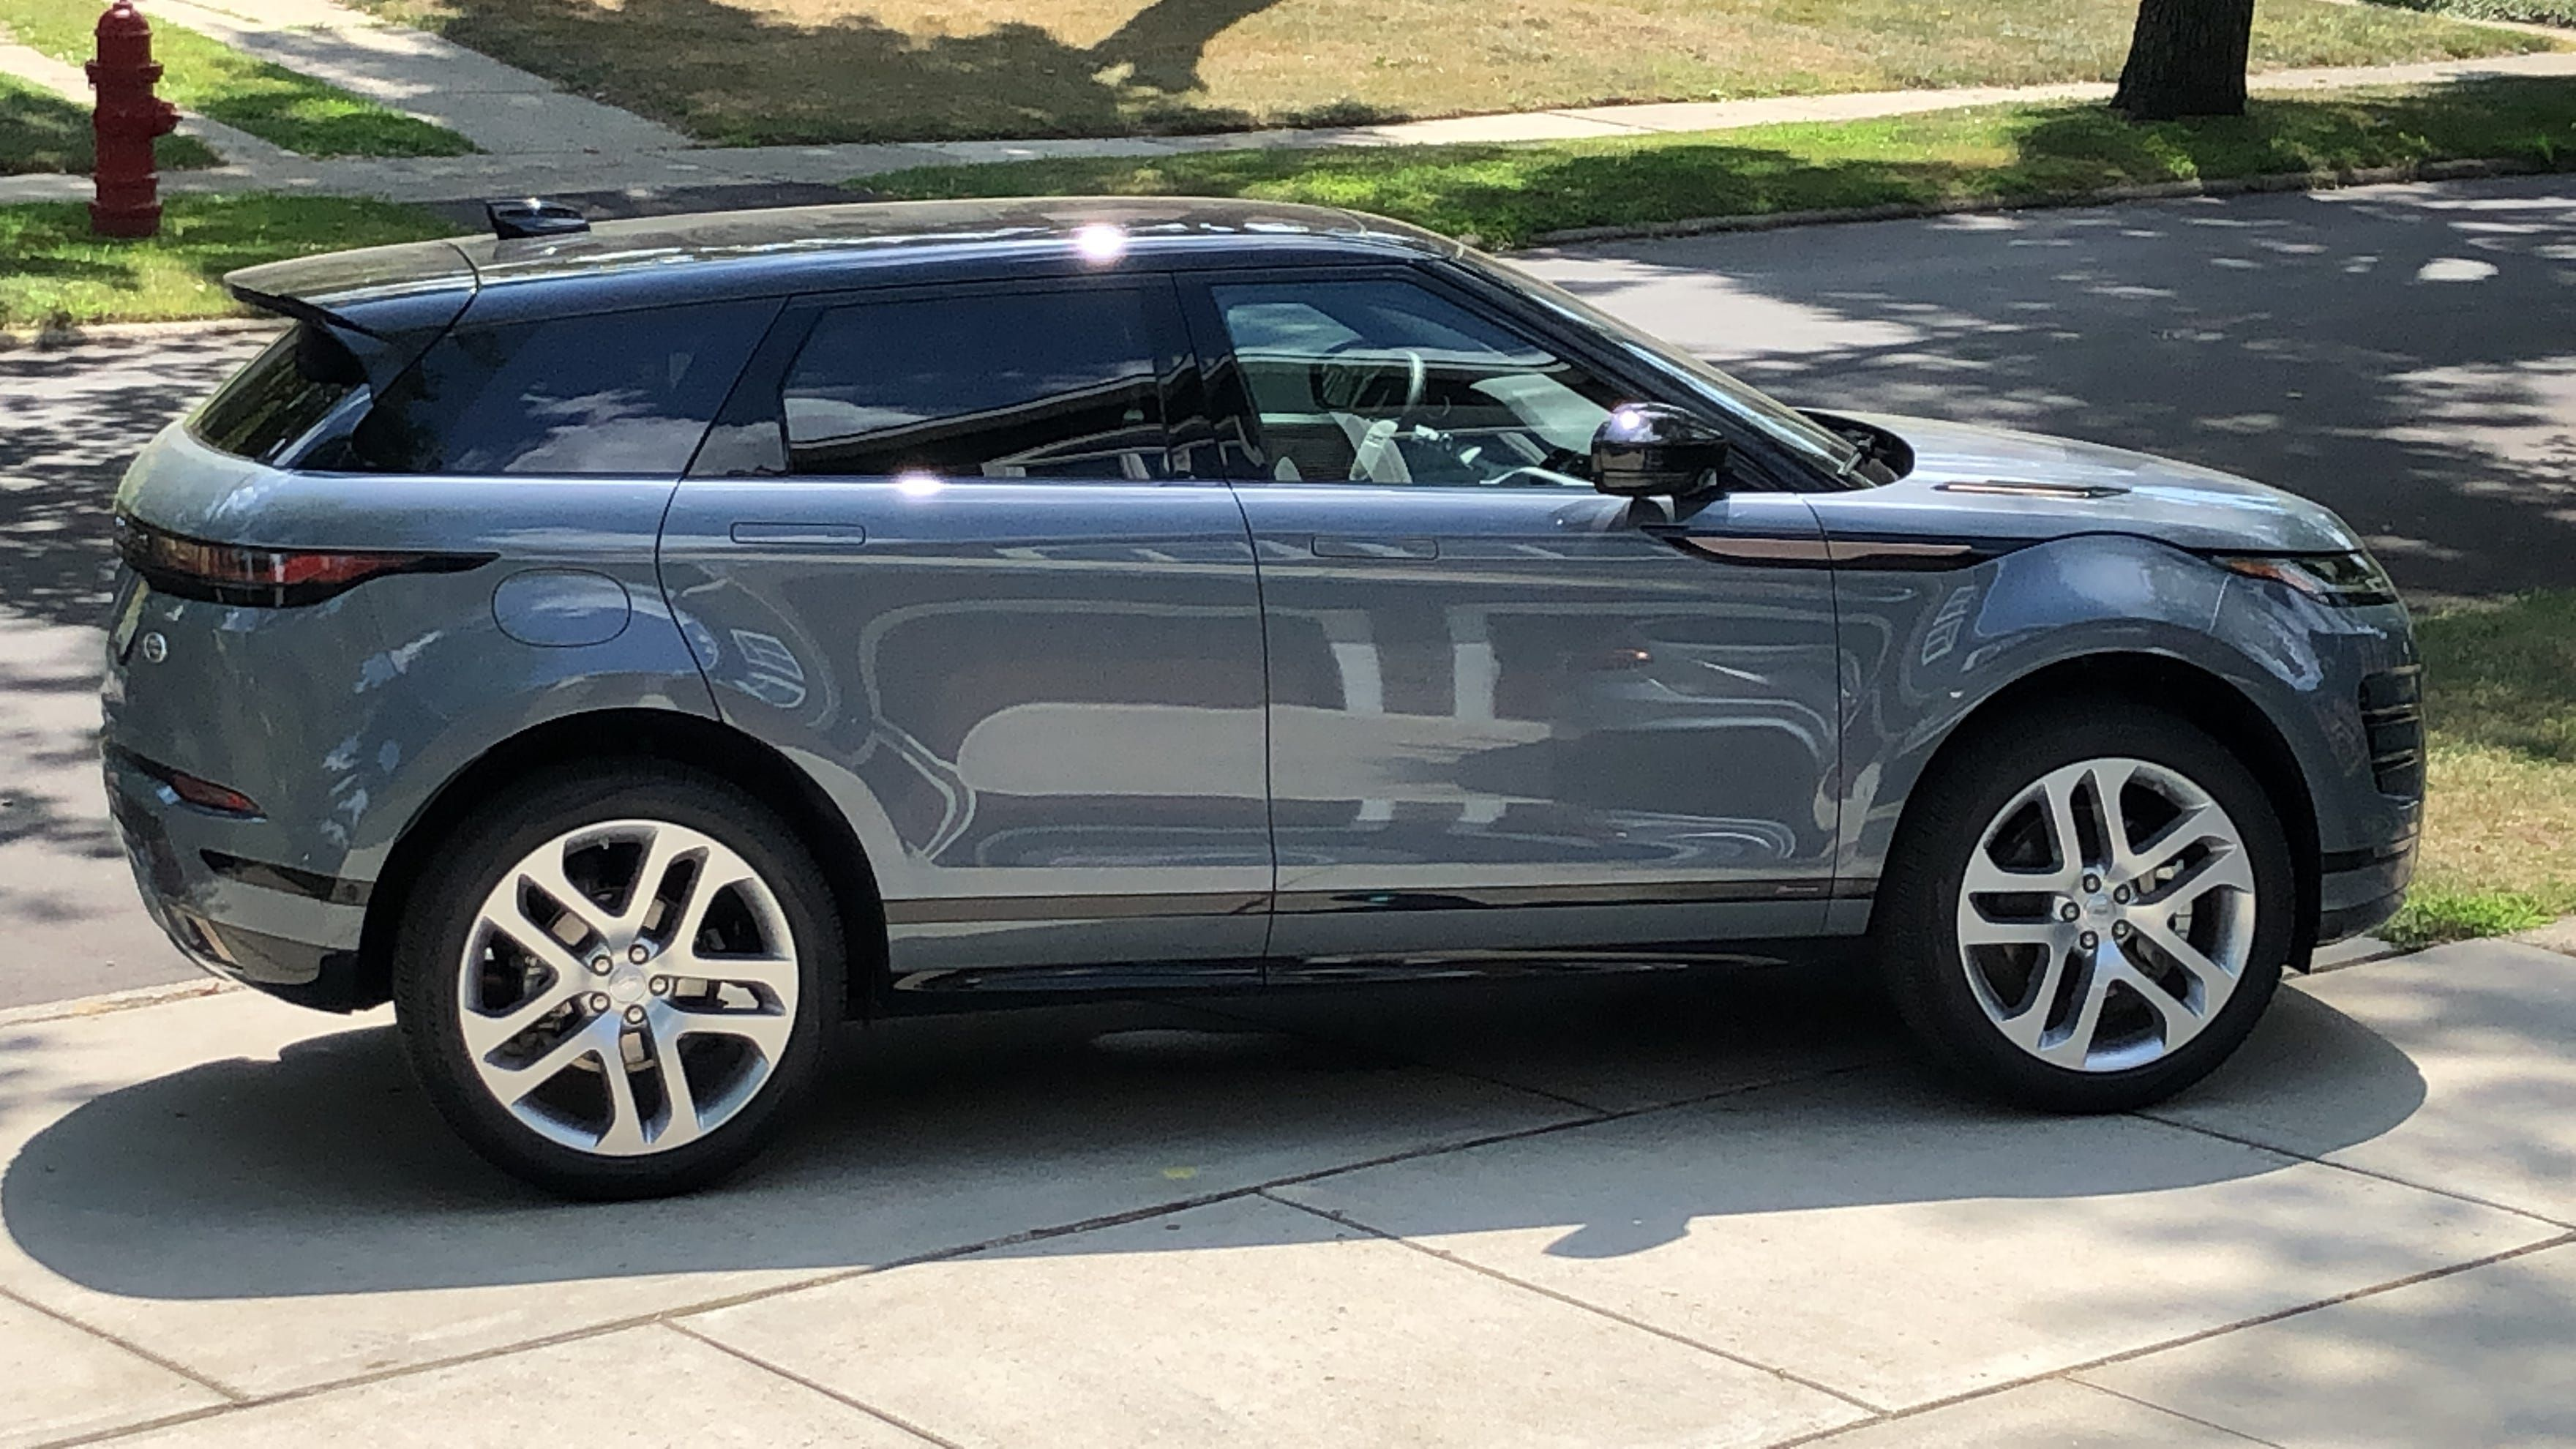 Pricey 2020 Range Rover Evoque Suv Nails The Look And Feel But